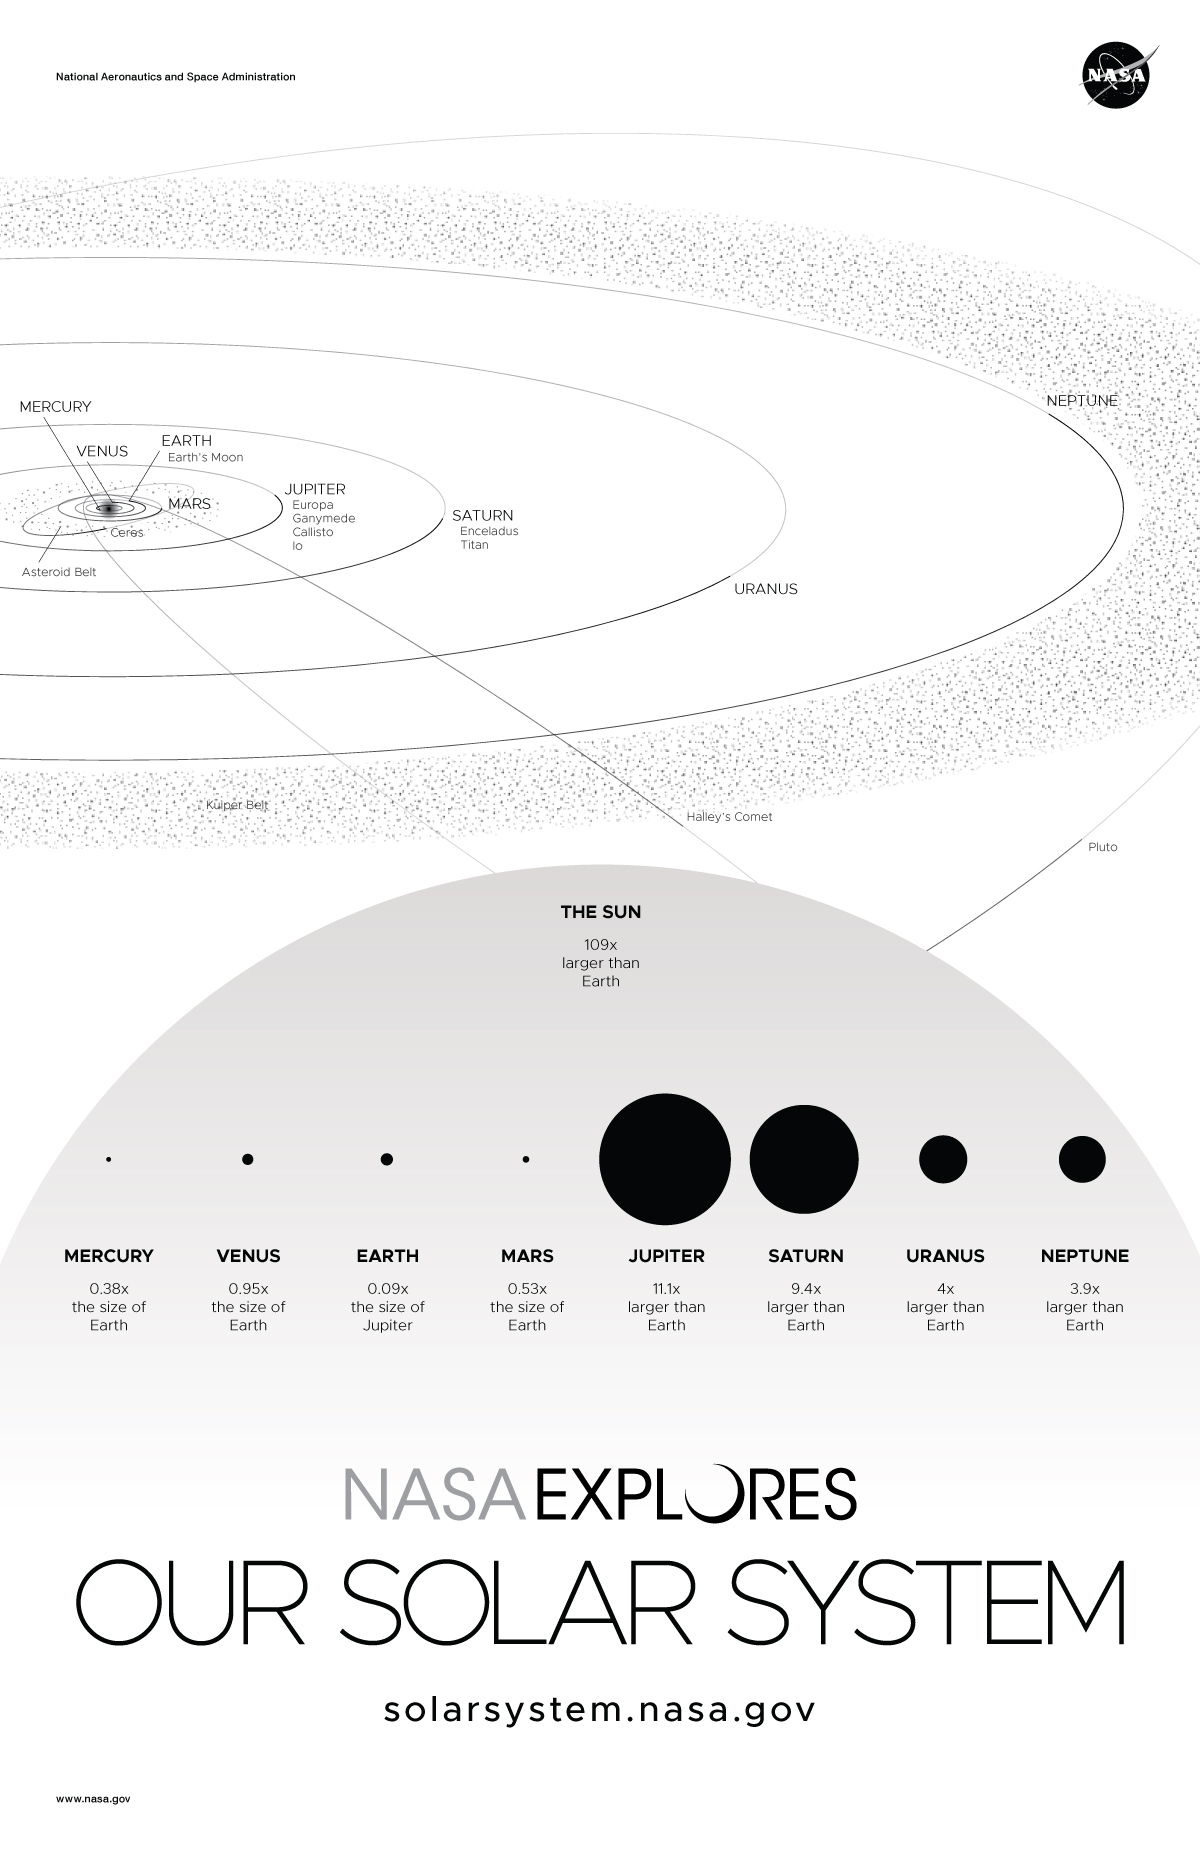 Scale and distance views of our solar system.